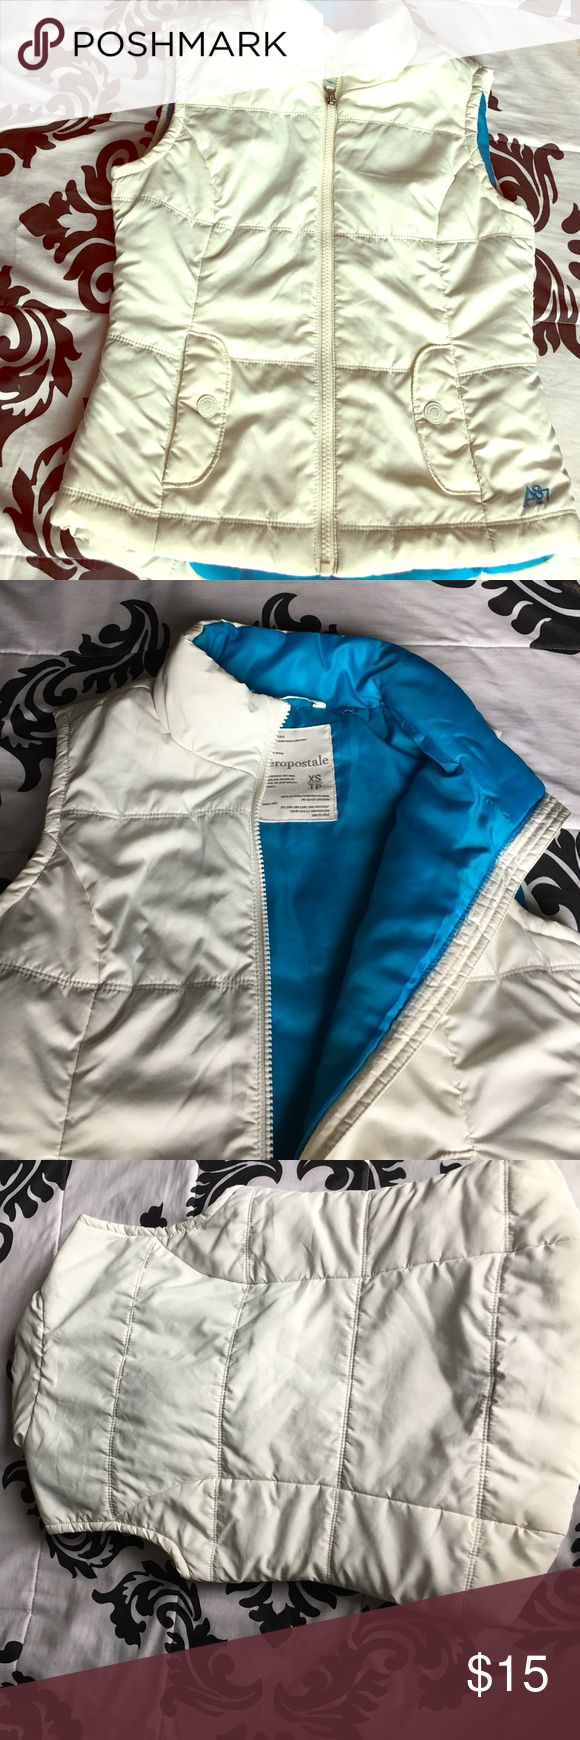 Aeropostale white and blue vest White blue worn once good condidtion fits well Aeropostale Jackets & Coats Vests